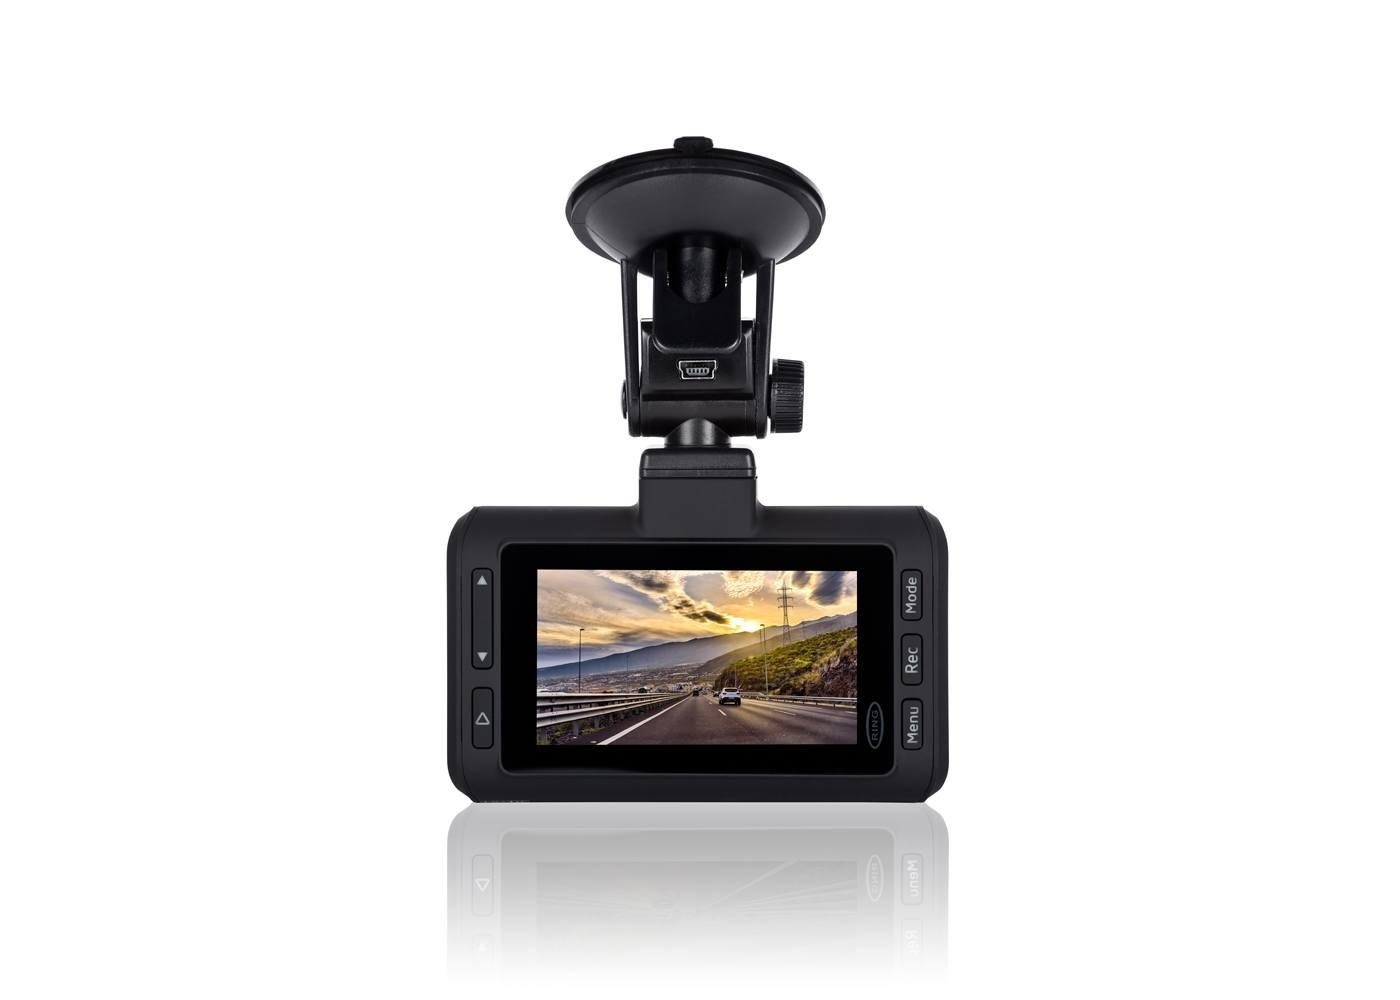 Ring Dash Cam met Night Vision en Parking mode R30 - autolampen.be